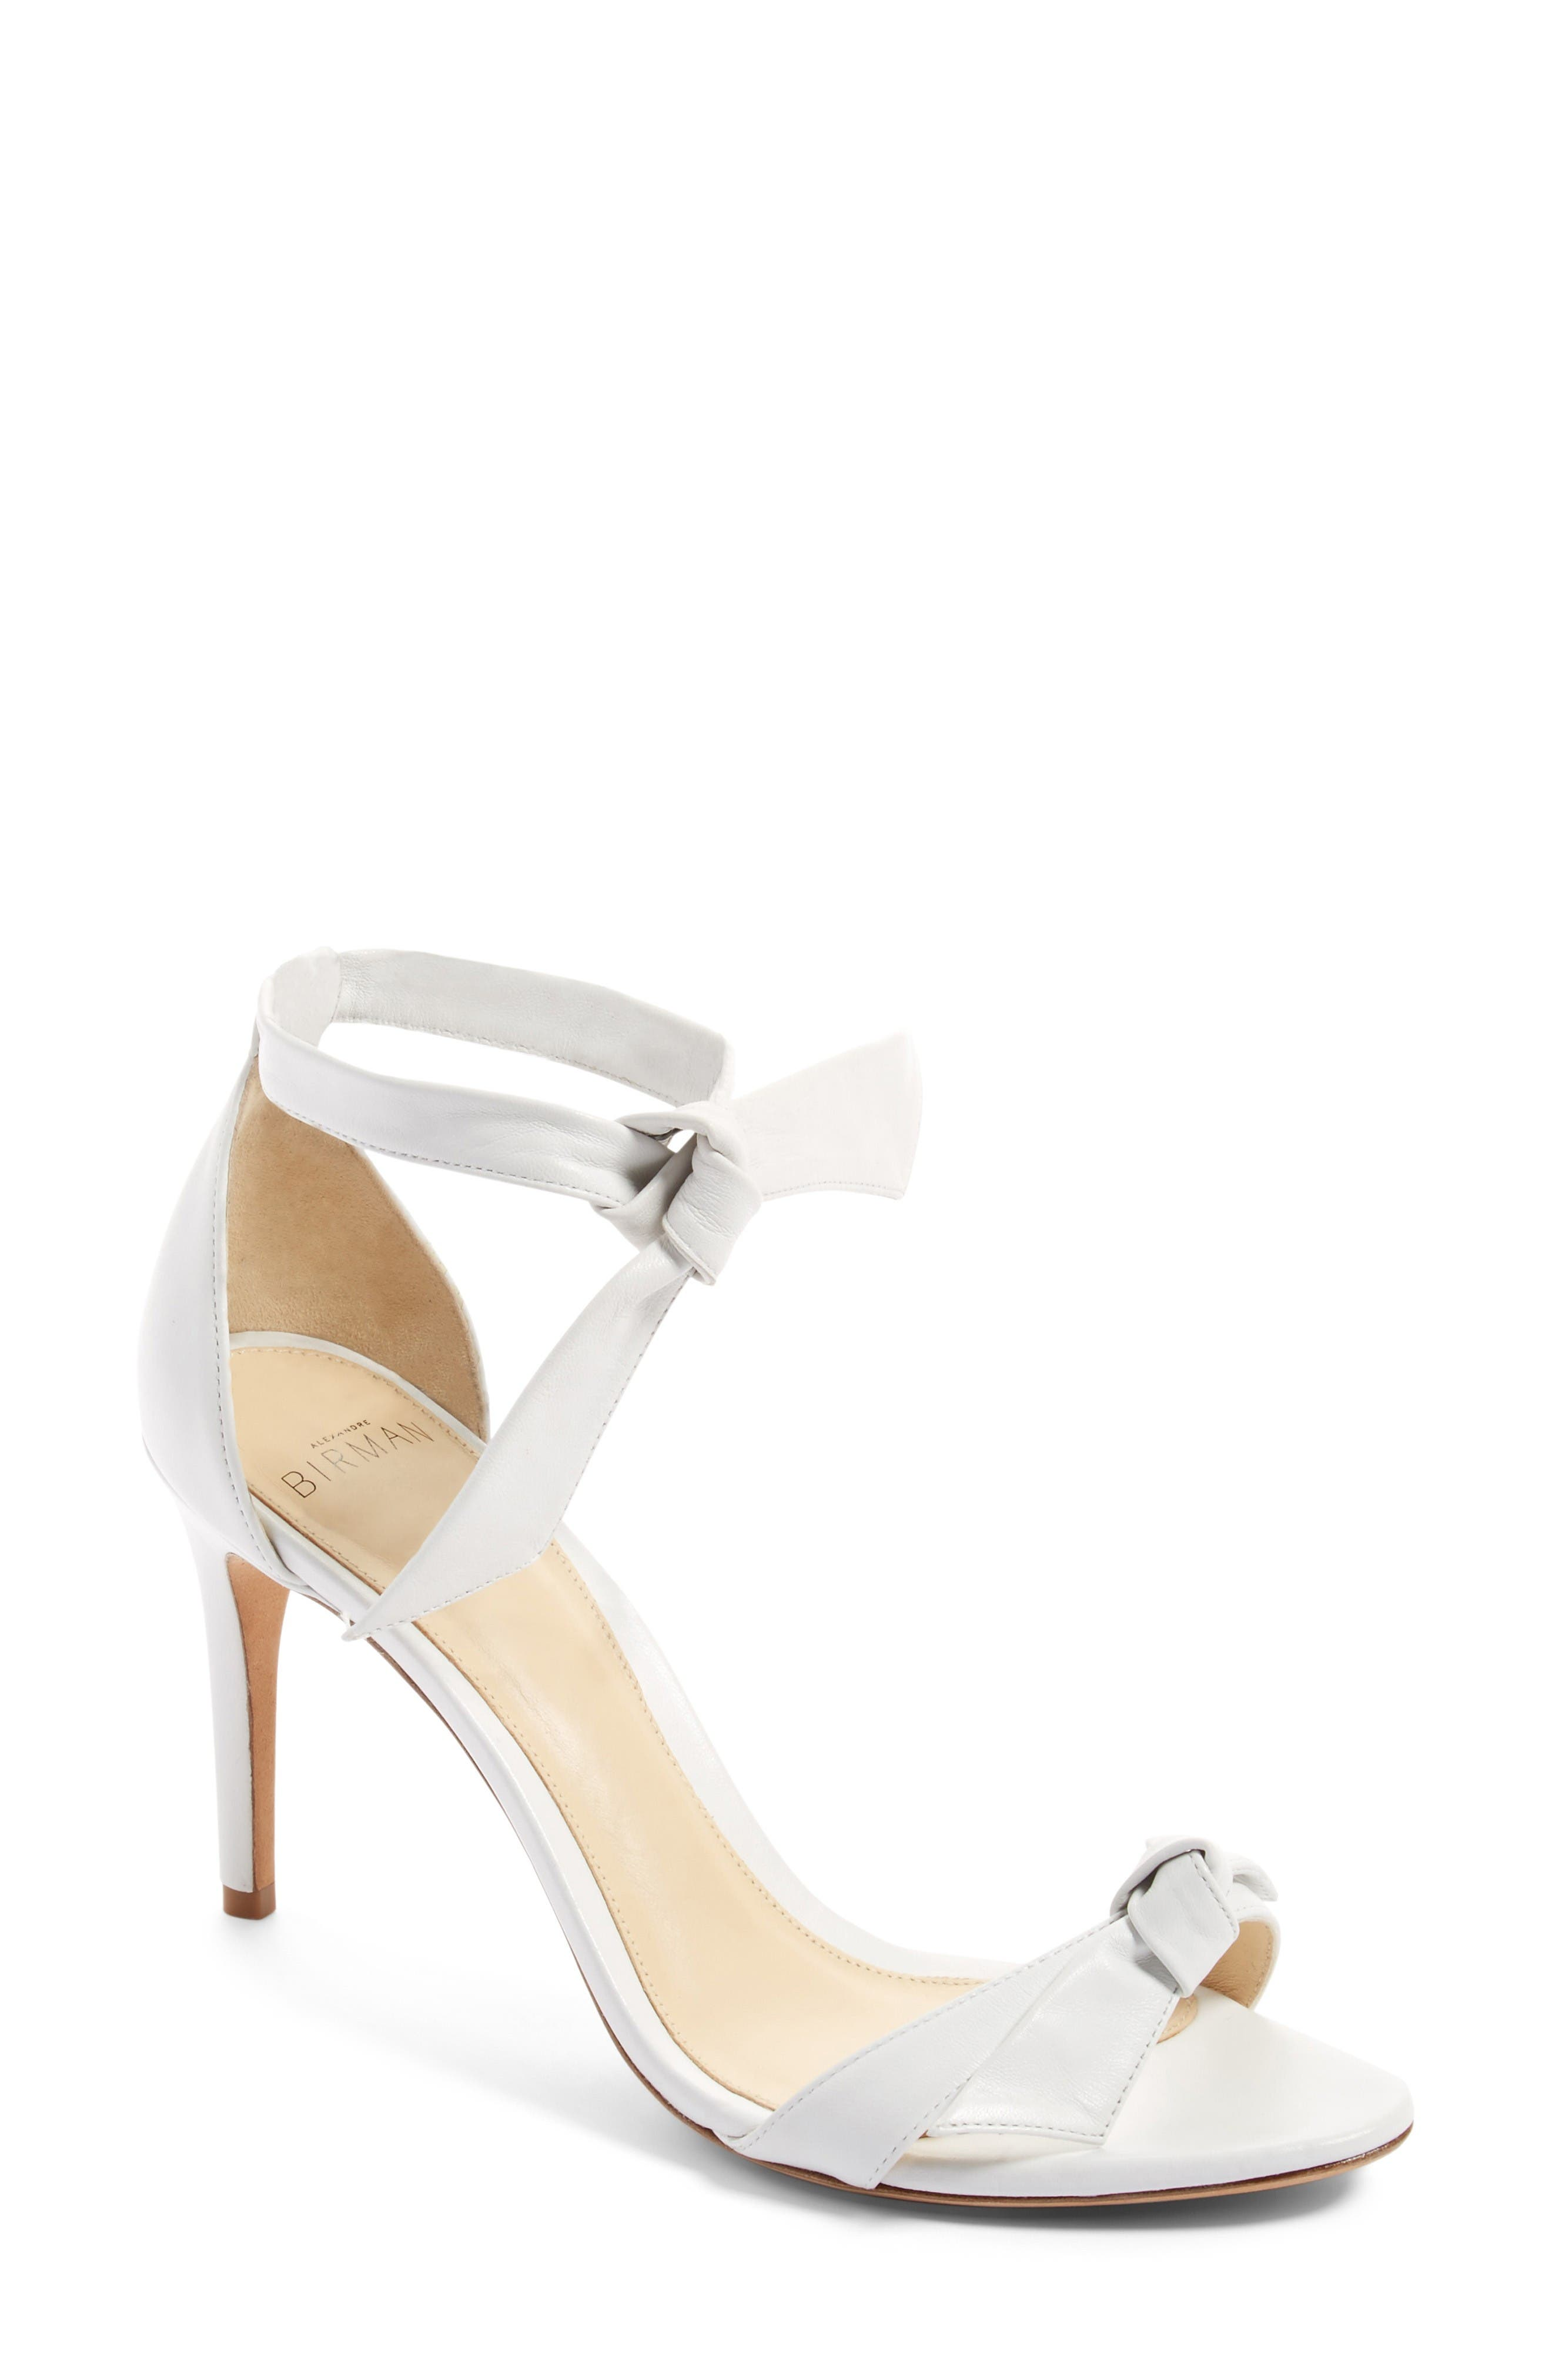 Clarita Ankle Tie Sandal,                         Main,                         color, White Leather